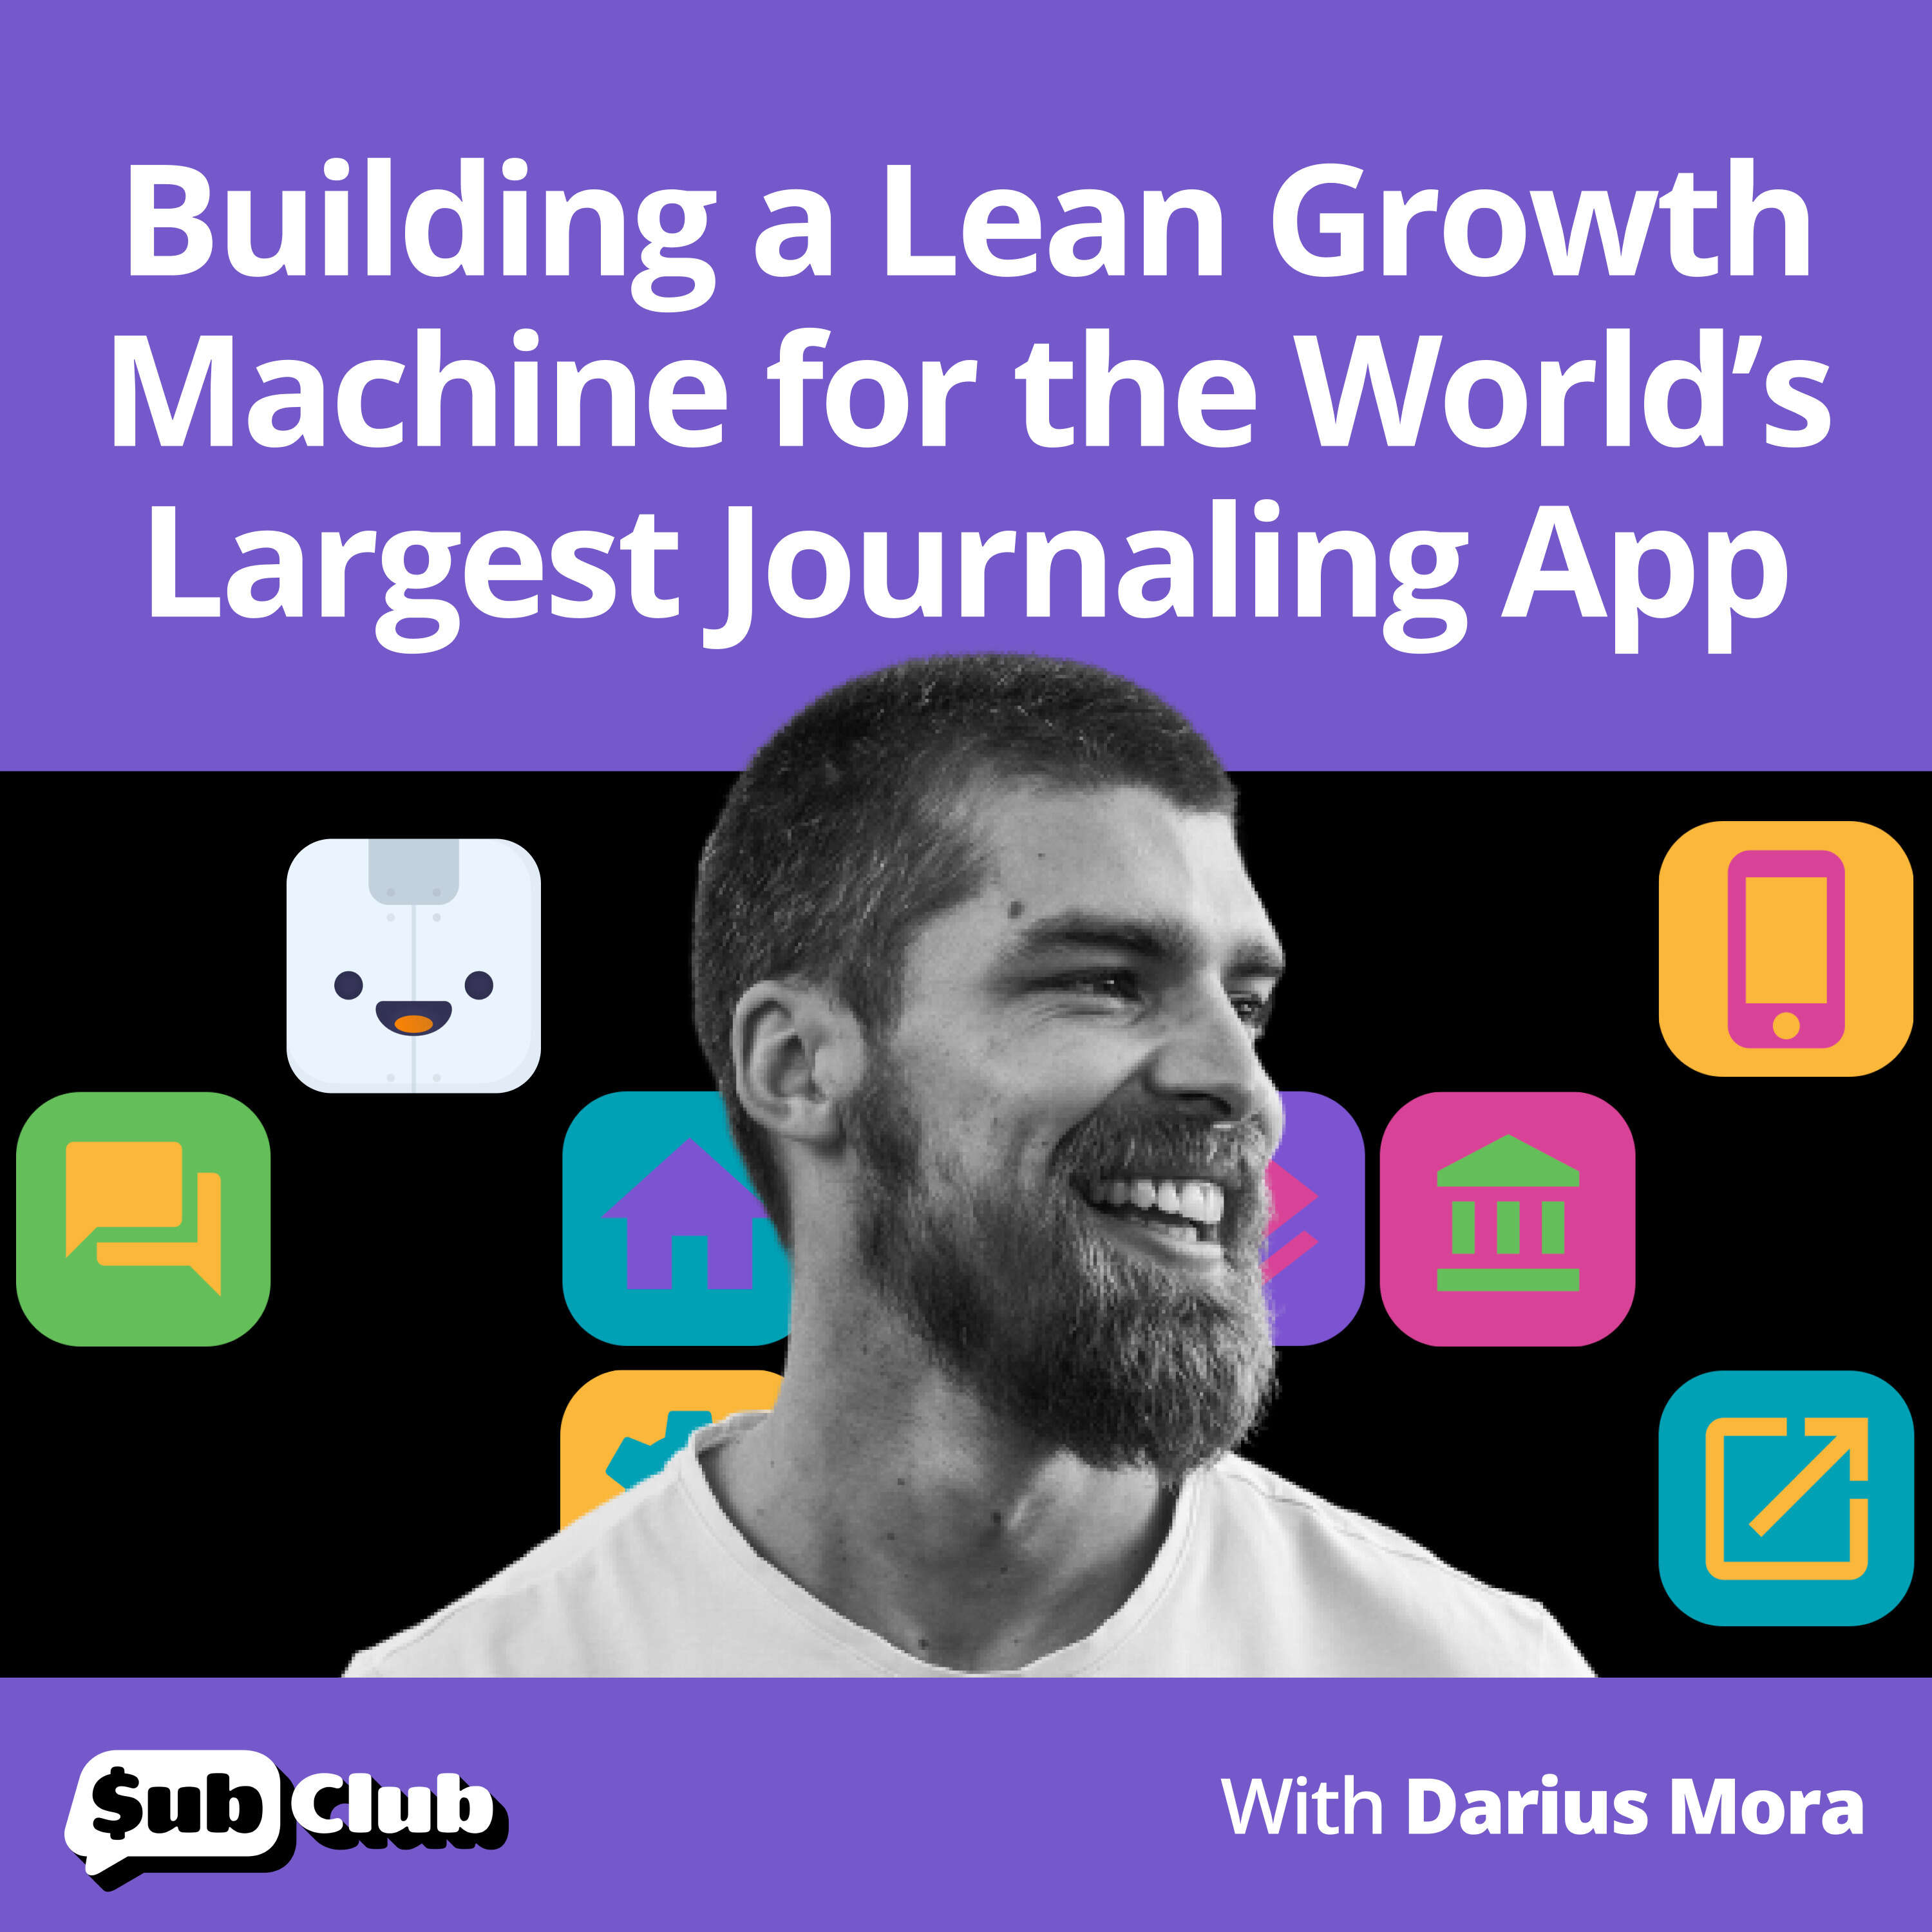 Darius Mora, Reflectly - Building a Lean Growth Machine for the World's Largest Journaling App